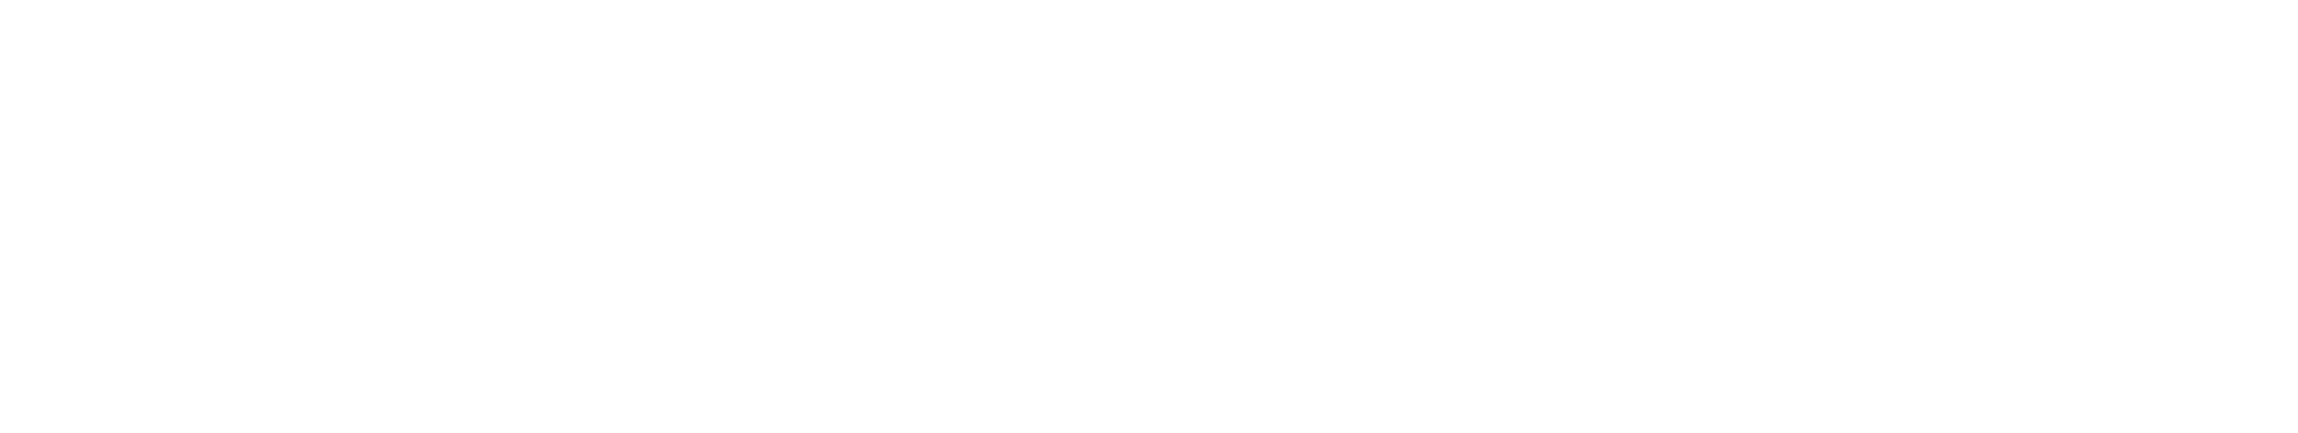 Blind + Low Vision NZ